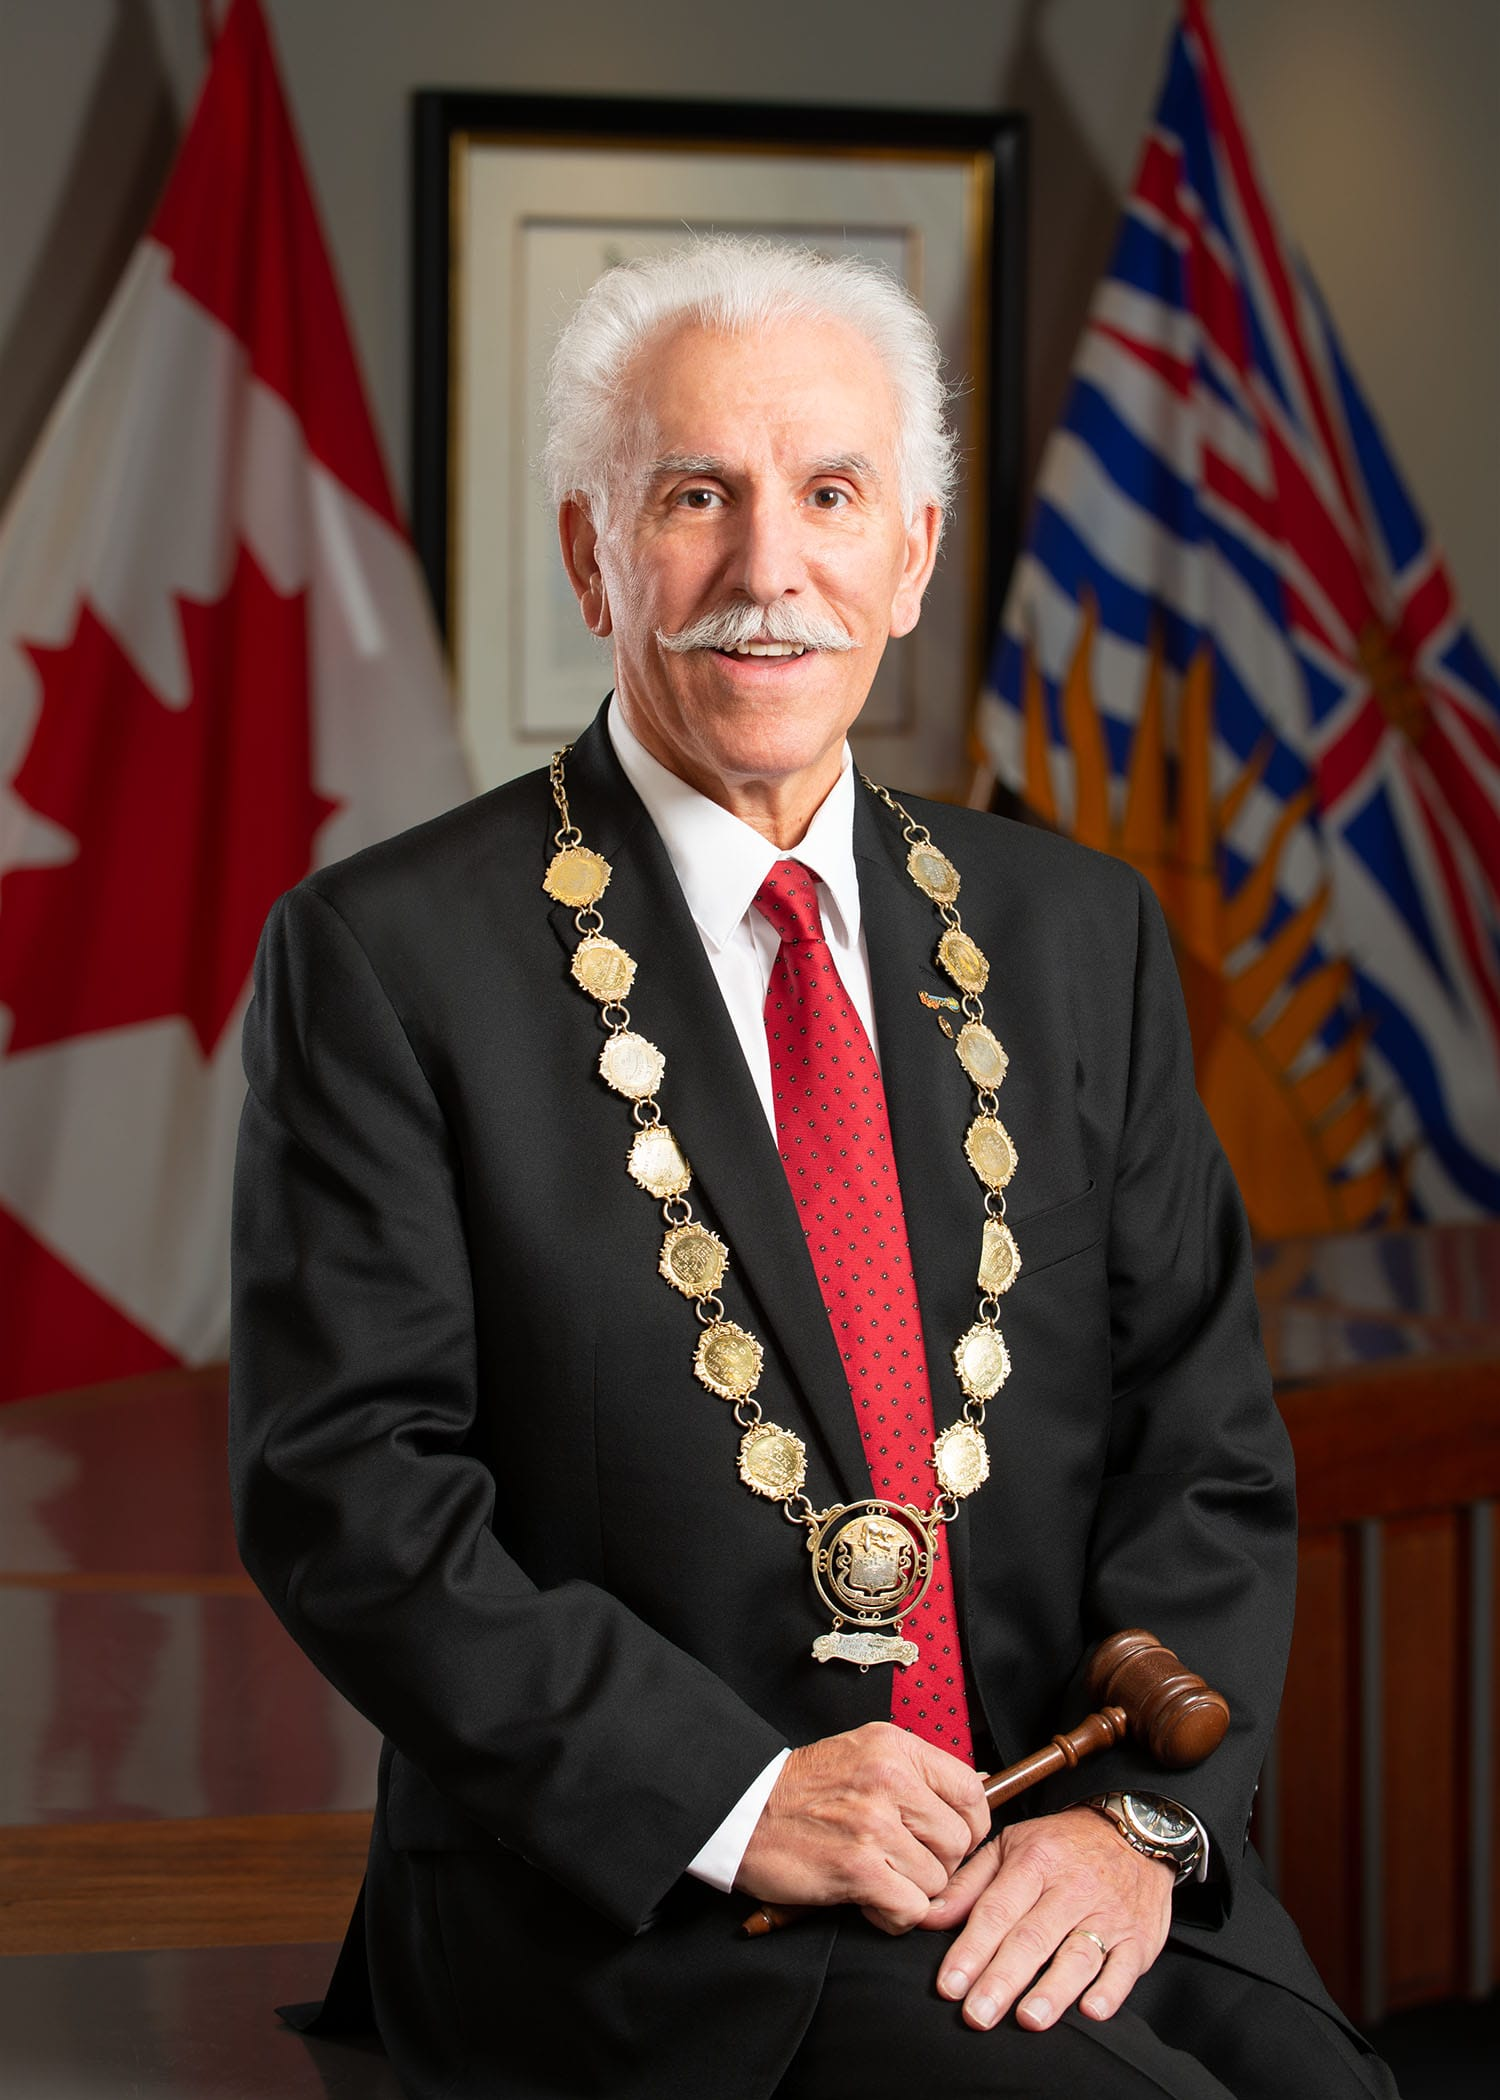 Mayor John Vassilaki